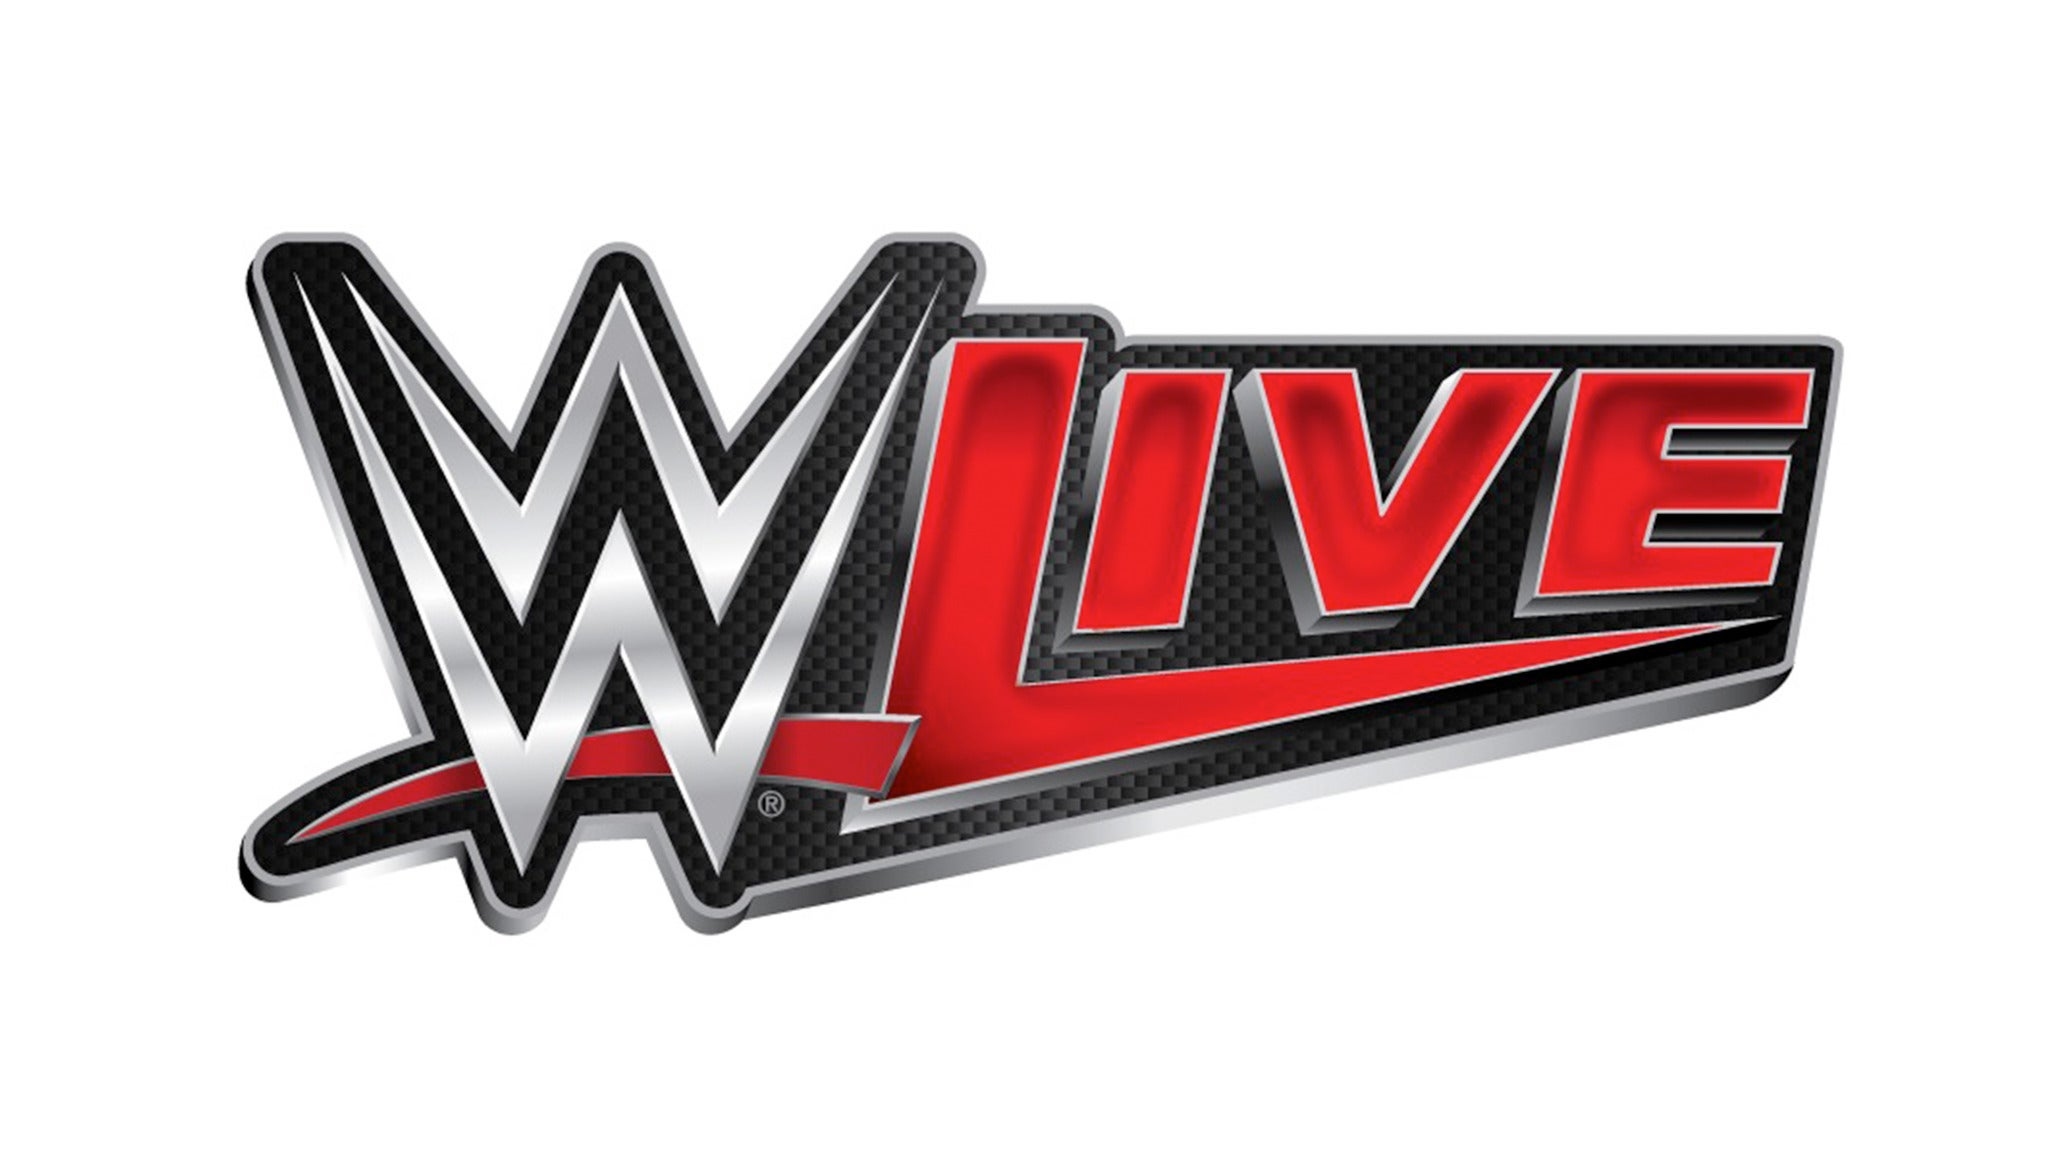 WWE Live at Neal S Blaisdell Arena